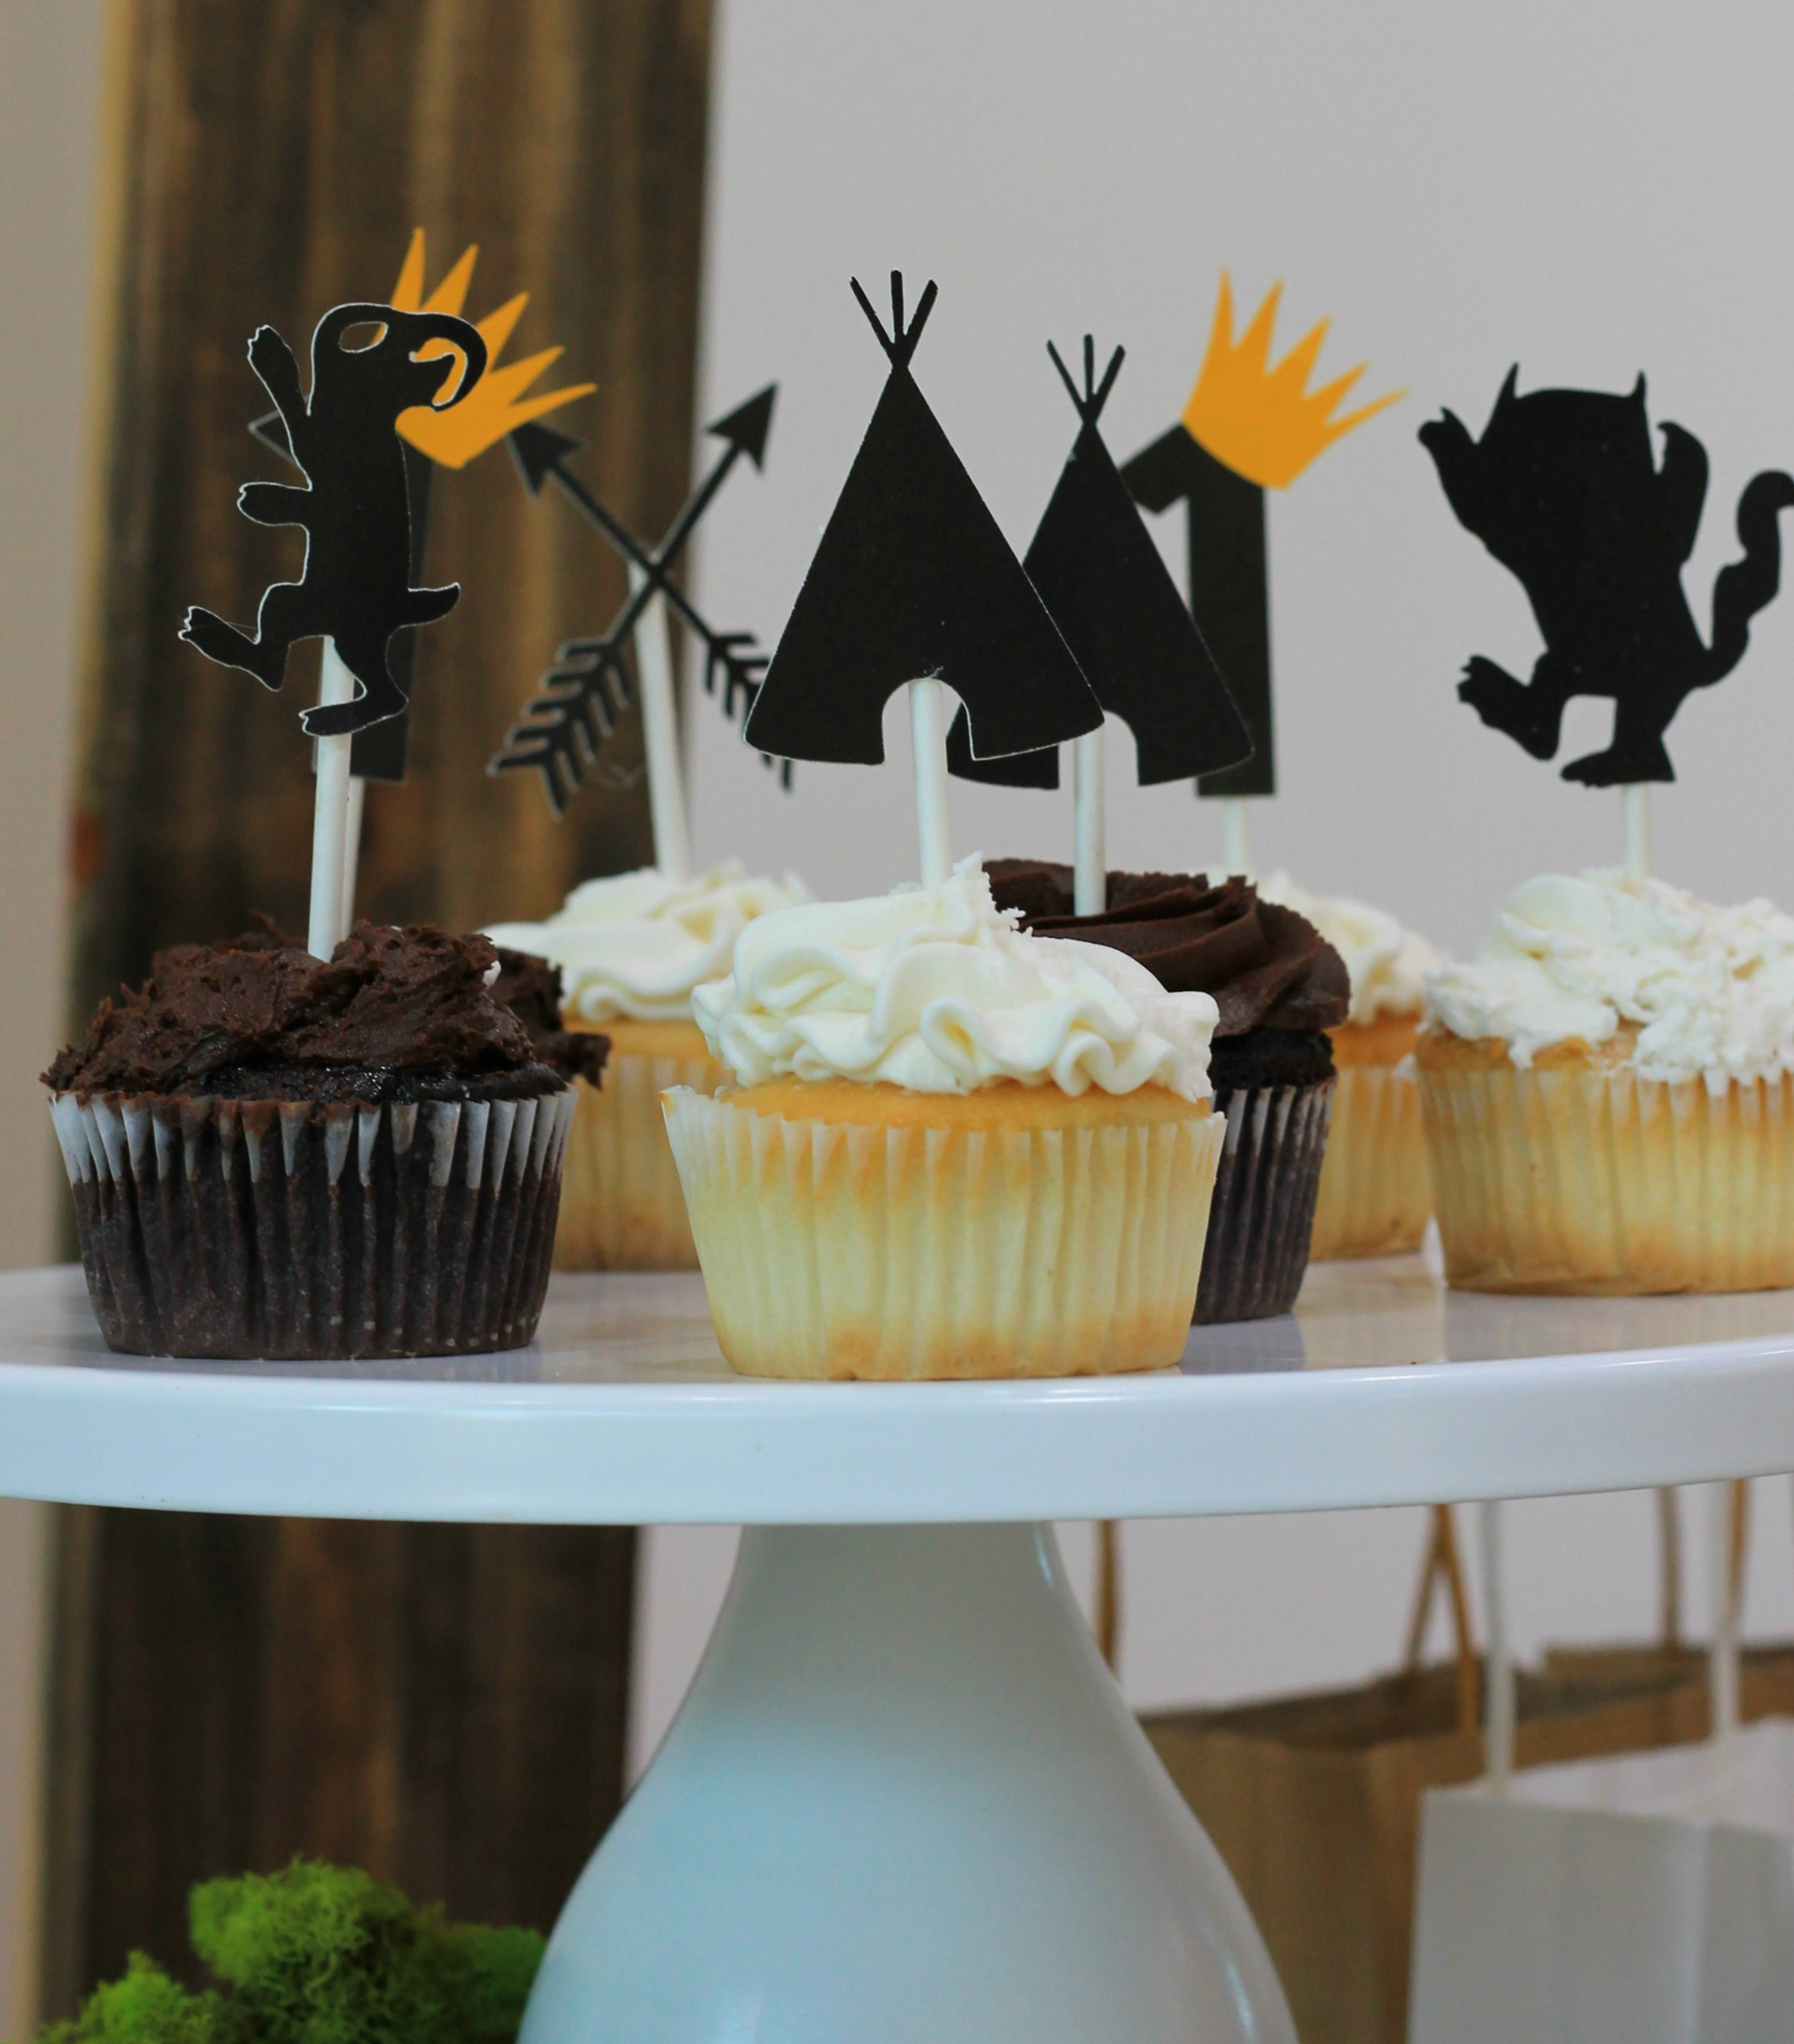 Wild One cupcakes-wild one dessert ideas-wild one birthday-wild one party ideas-wild one dessert table-wild one first birthday-wild one cupcake toppers-www.SugarPartiesLA.com.jpg